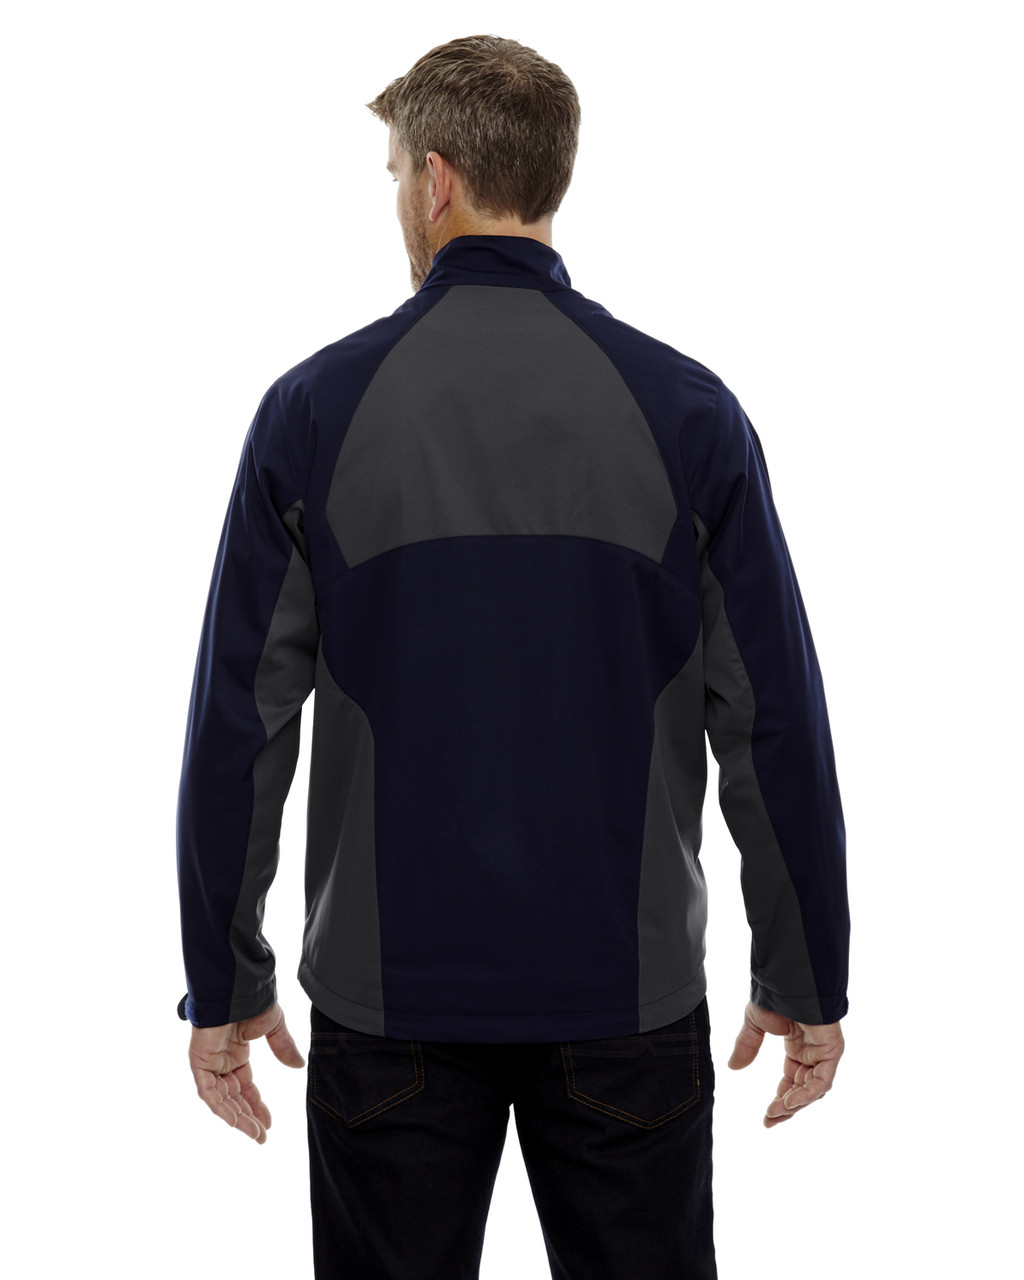 Night-back 88656 North End Sport Red Laminated Performance Stretch Wind Shirt